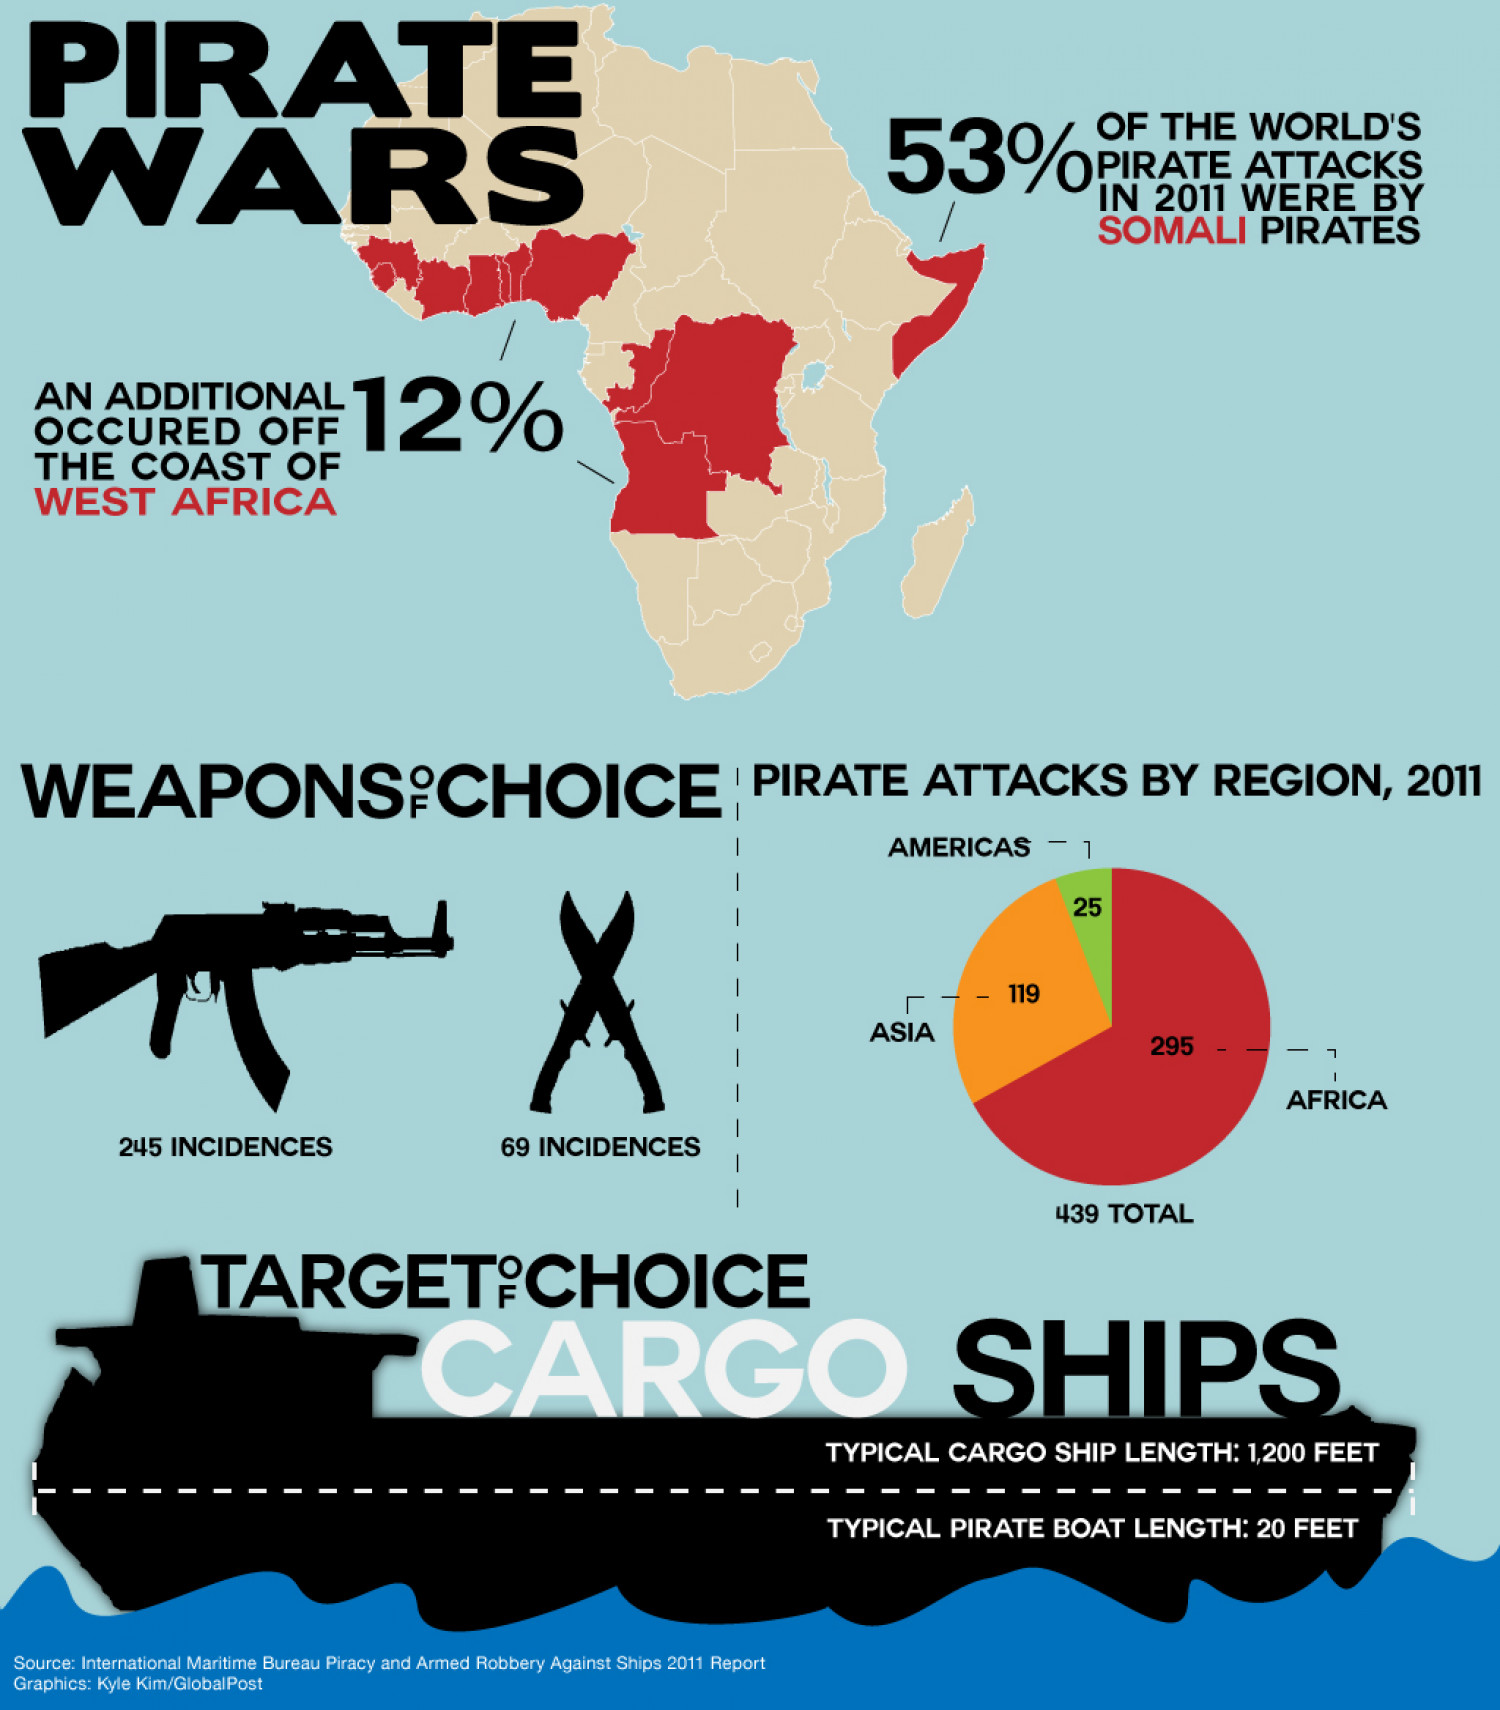 Pirate Wars Infographic